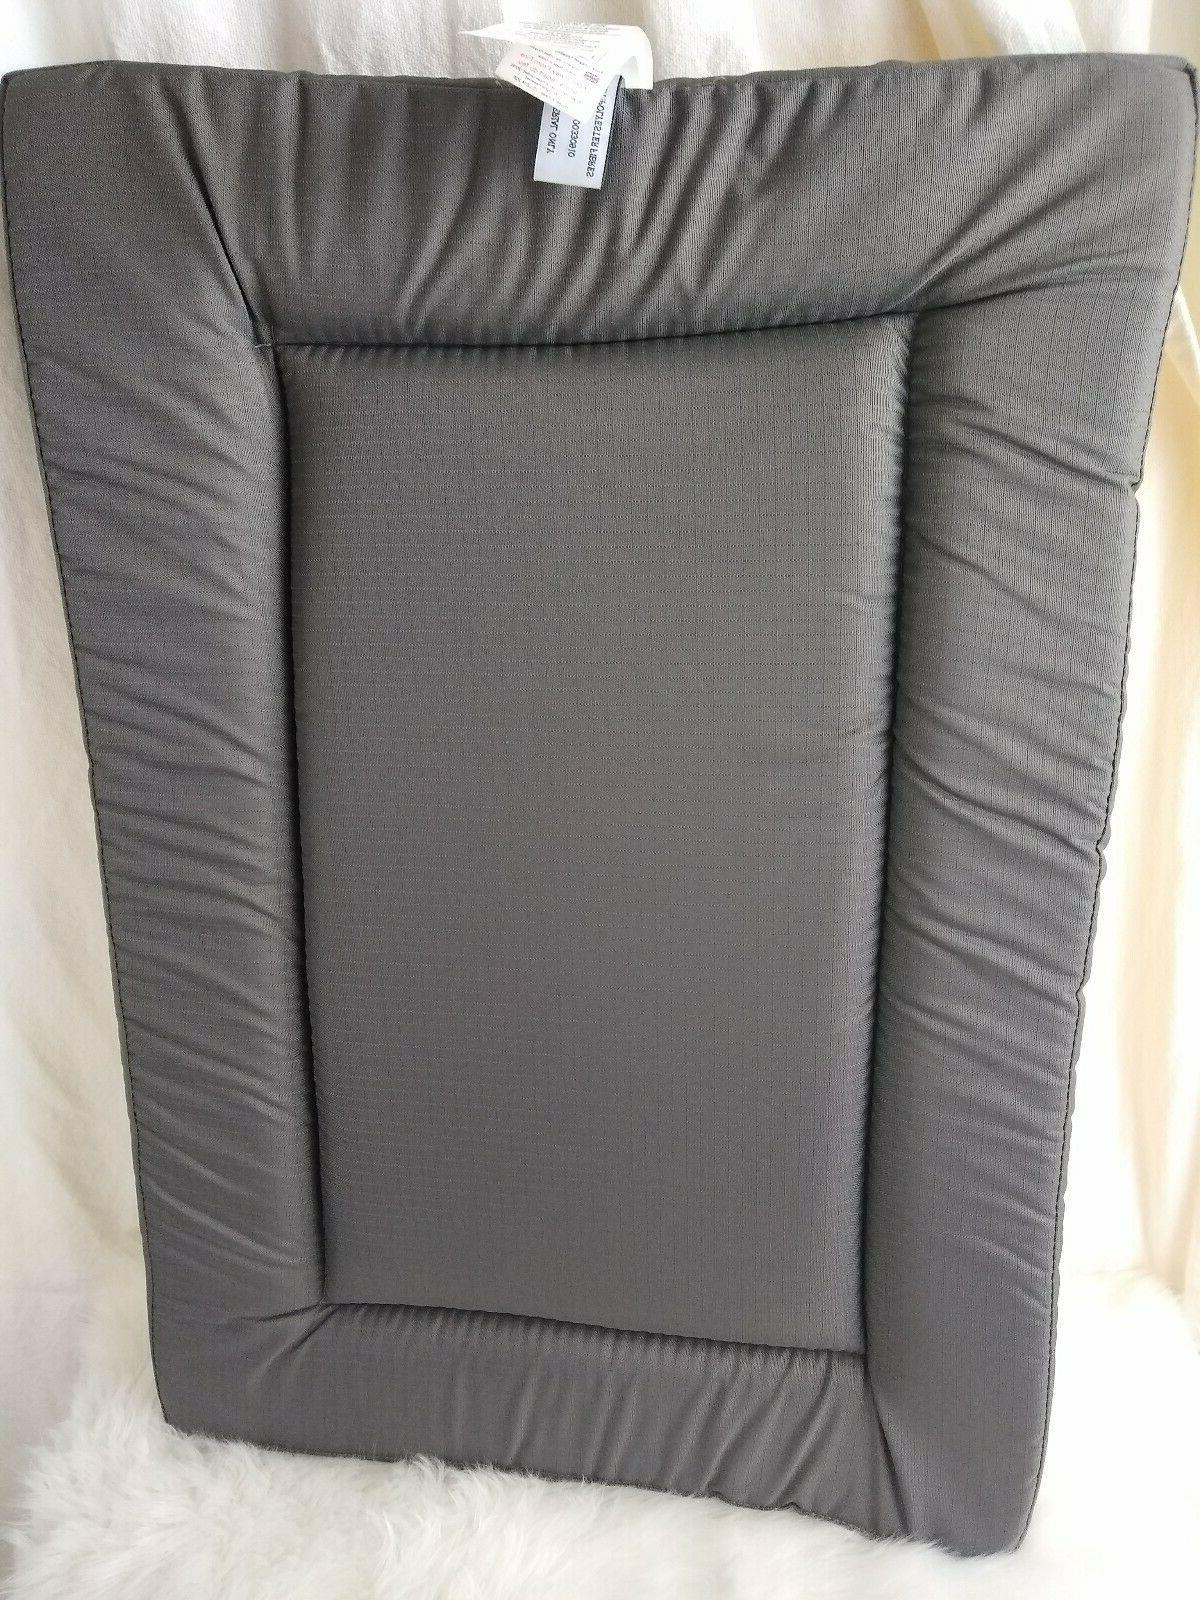 NWT Paws Luxury Bed Water Crate Medium